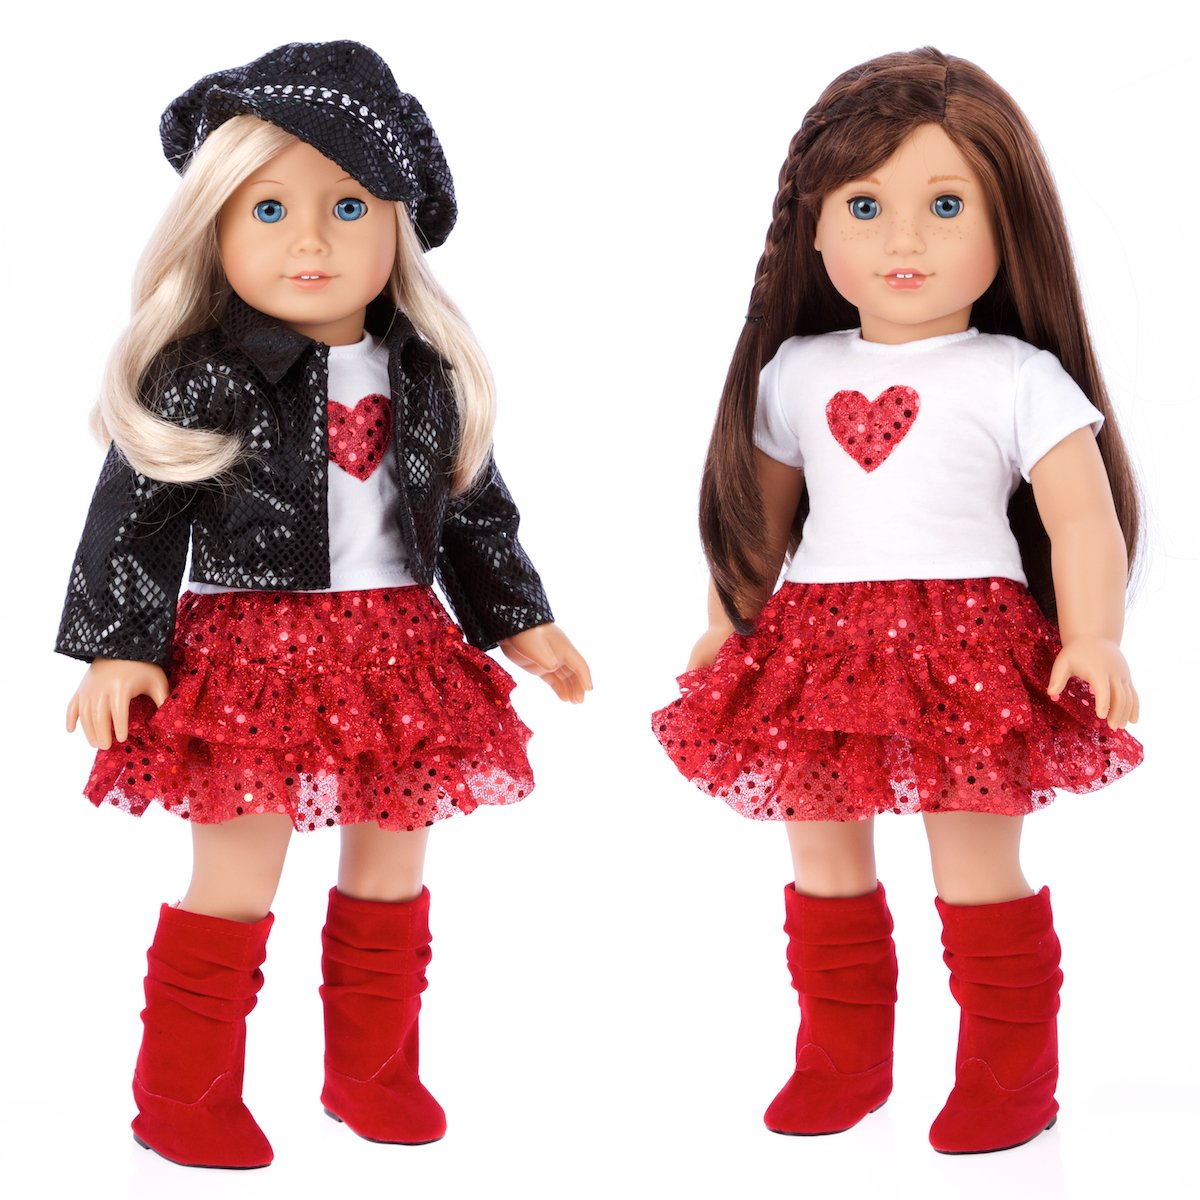 DWC-1235 Red Skirt /& Boots 5 Piece Outfit DreamWorld Collections Motorcycle Faux Leather Jacket with Paperboy Hat Chic and Sassy Clothes Fits 18 American Girl Doll Doll Not Included White T-shirt